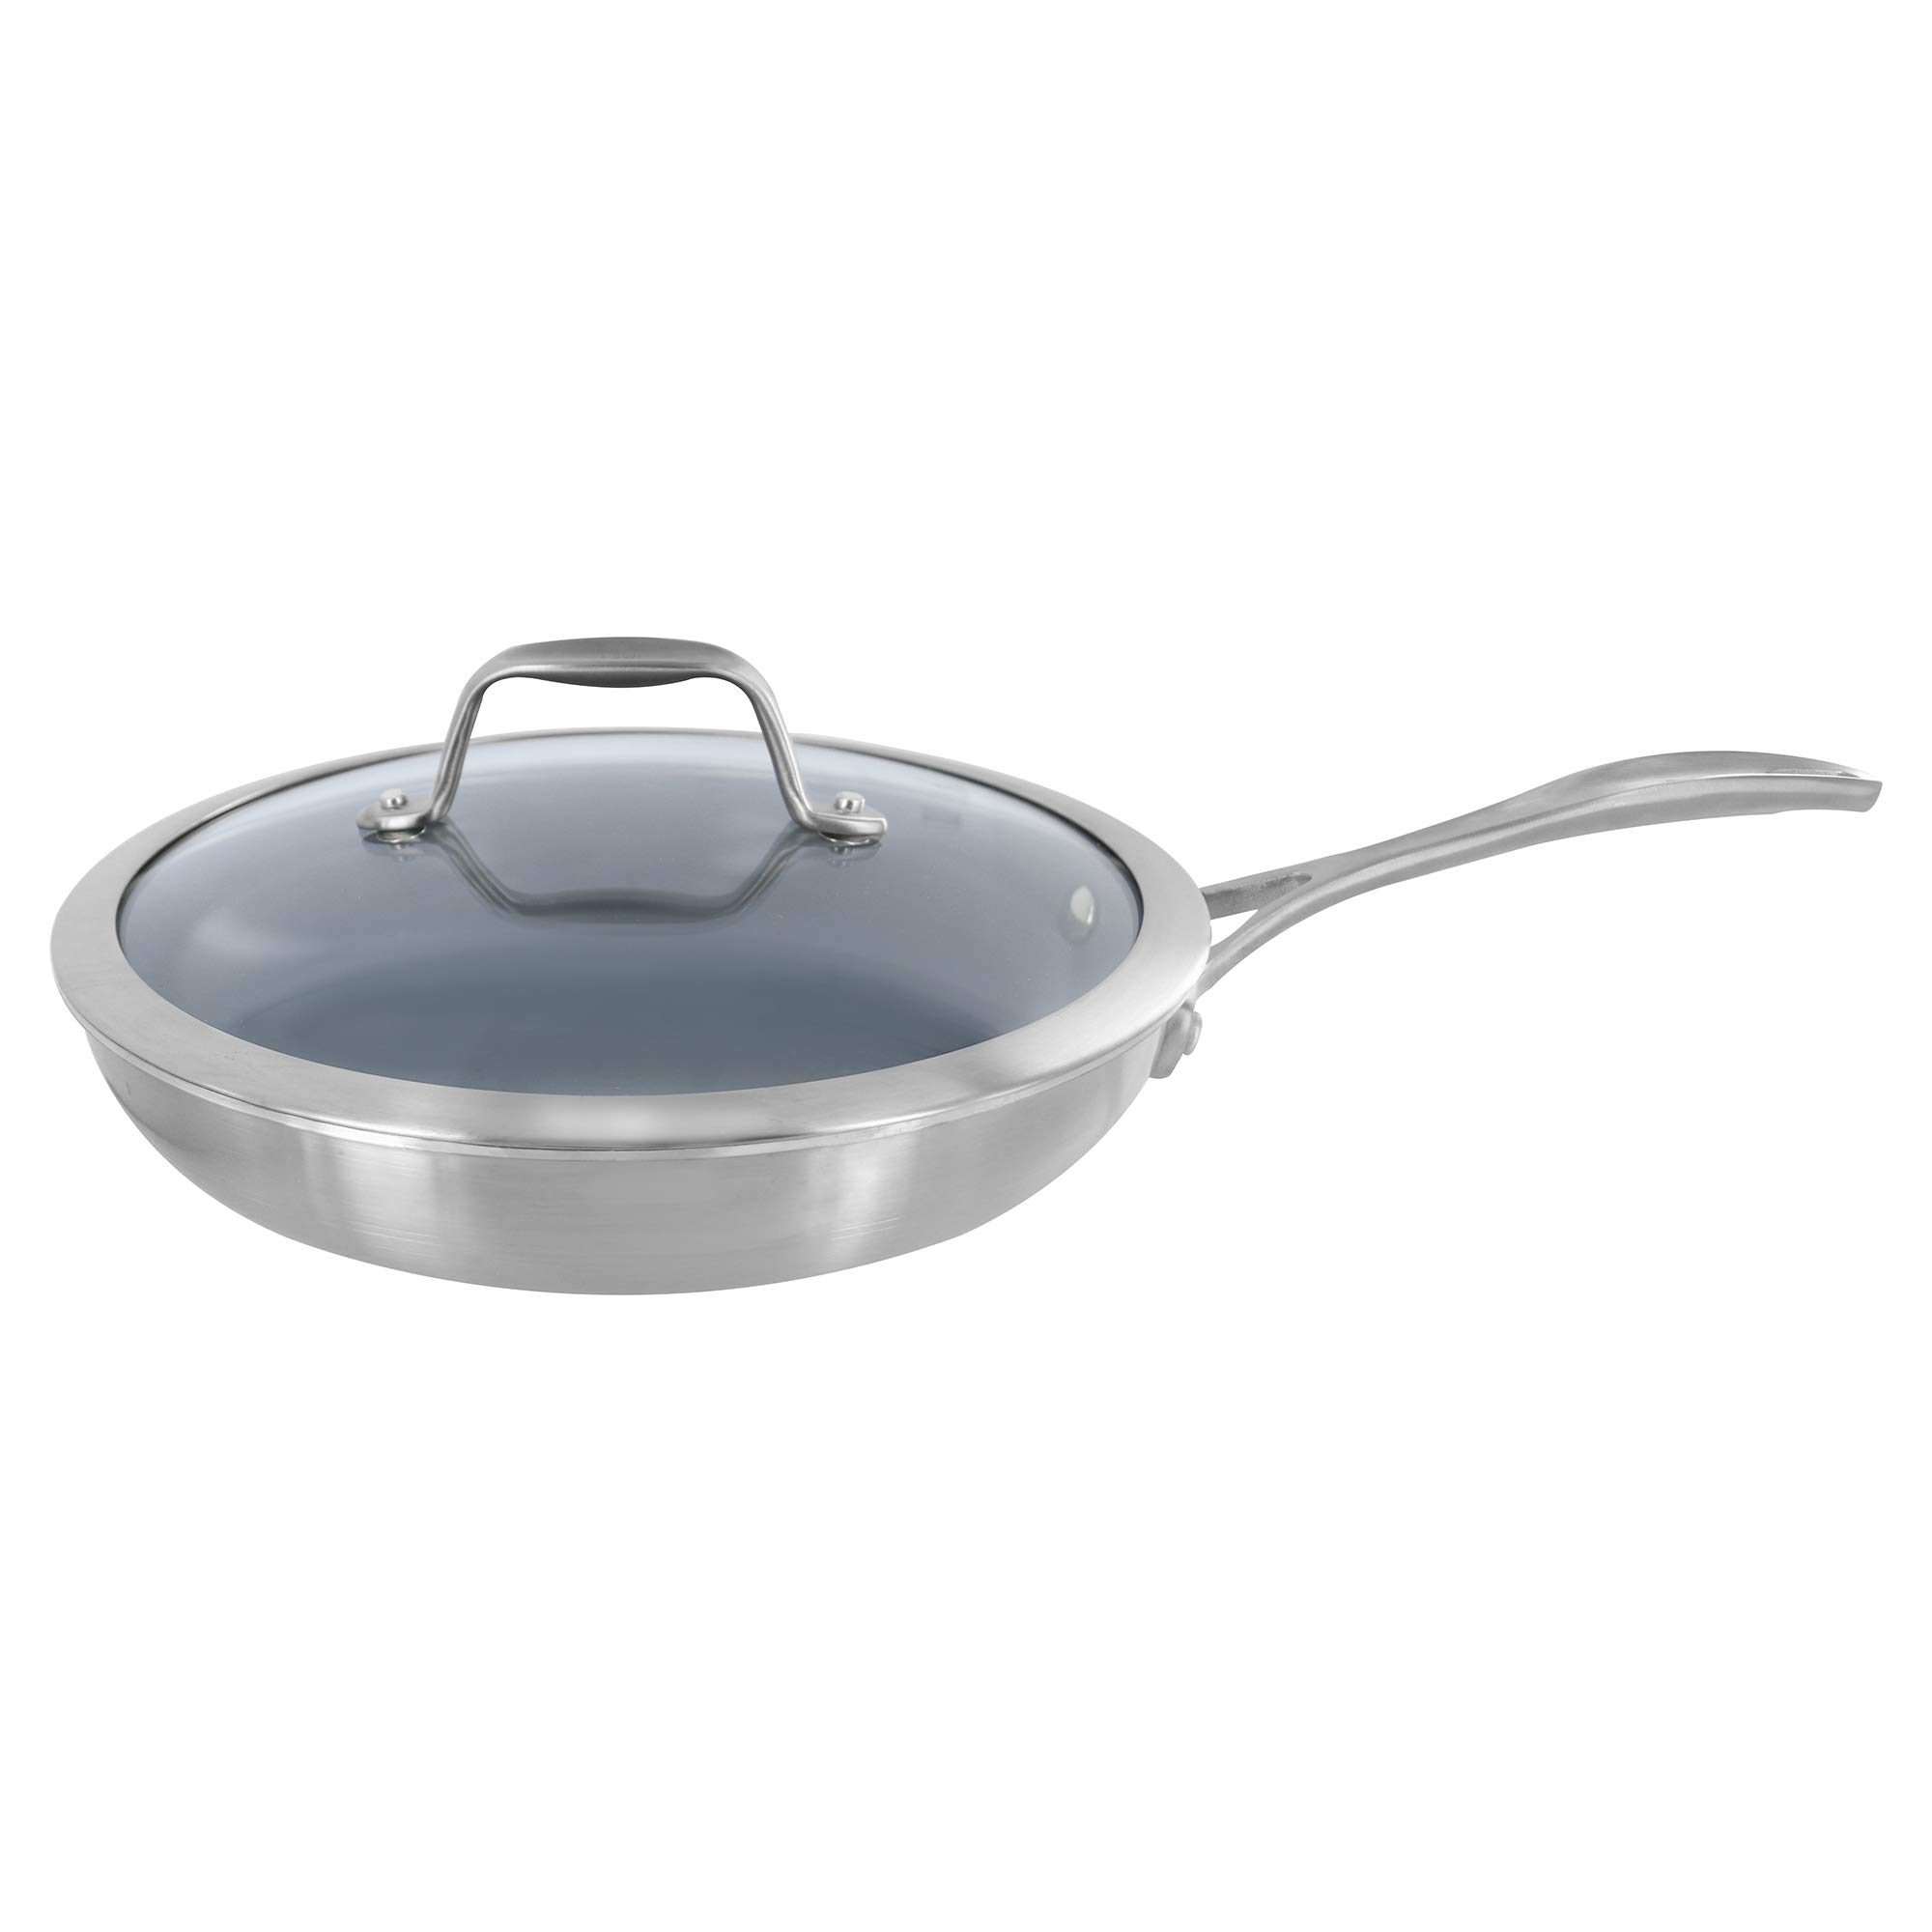 Zwilling J.A. Henckels Spirit 9.5-inch Stainless Steel Ceramic Nonstick Skillet with Lid